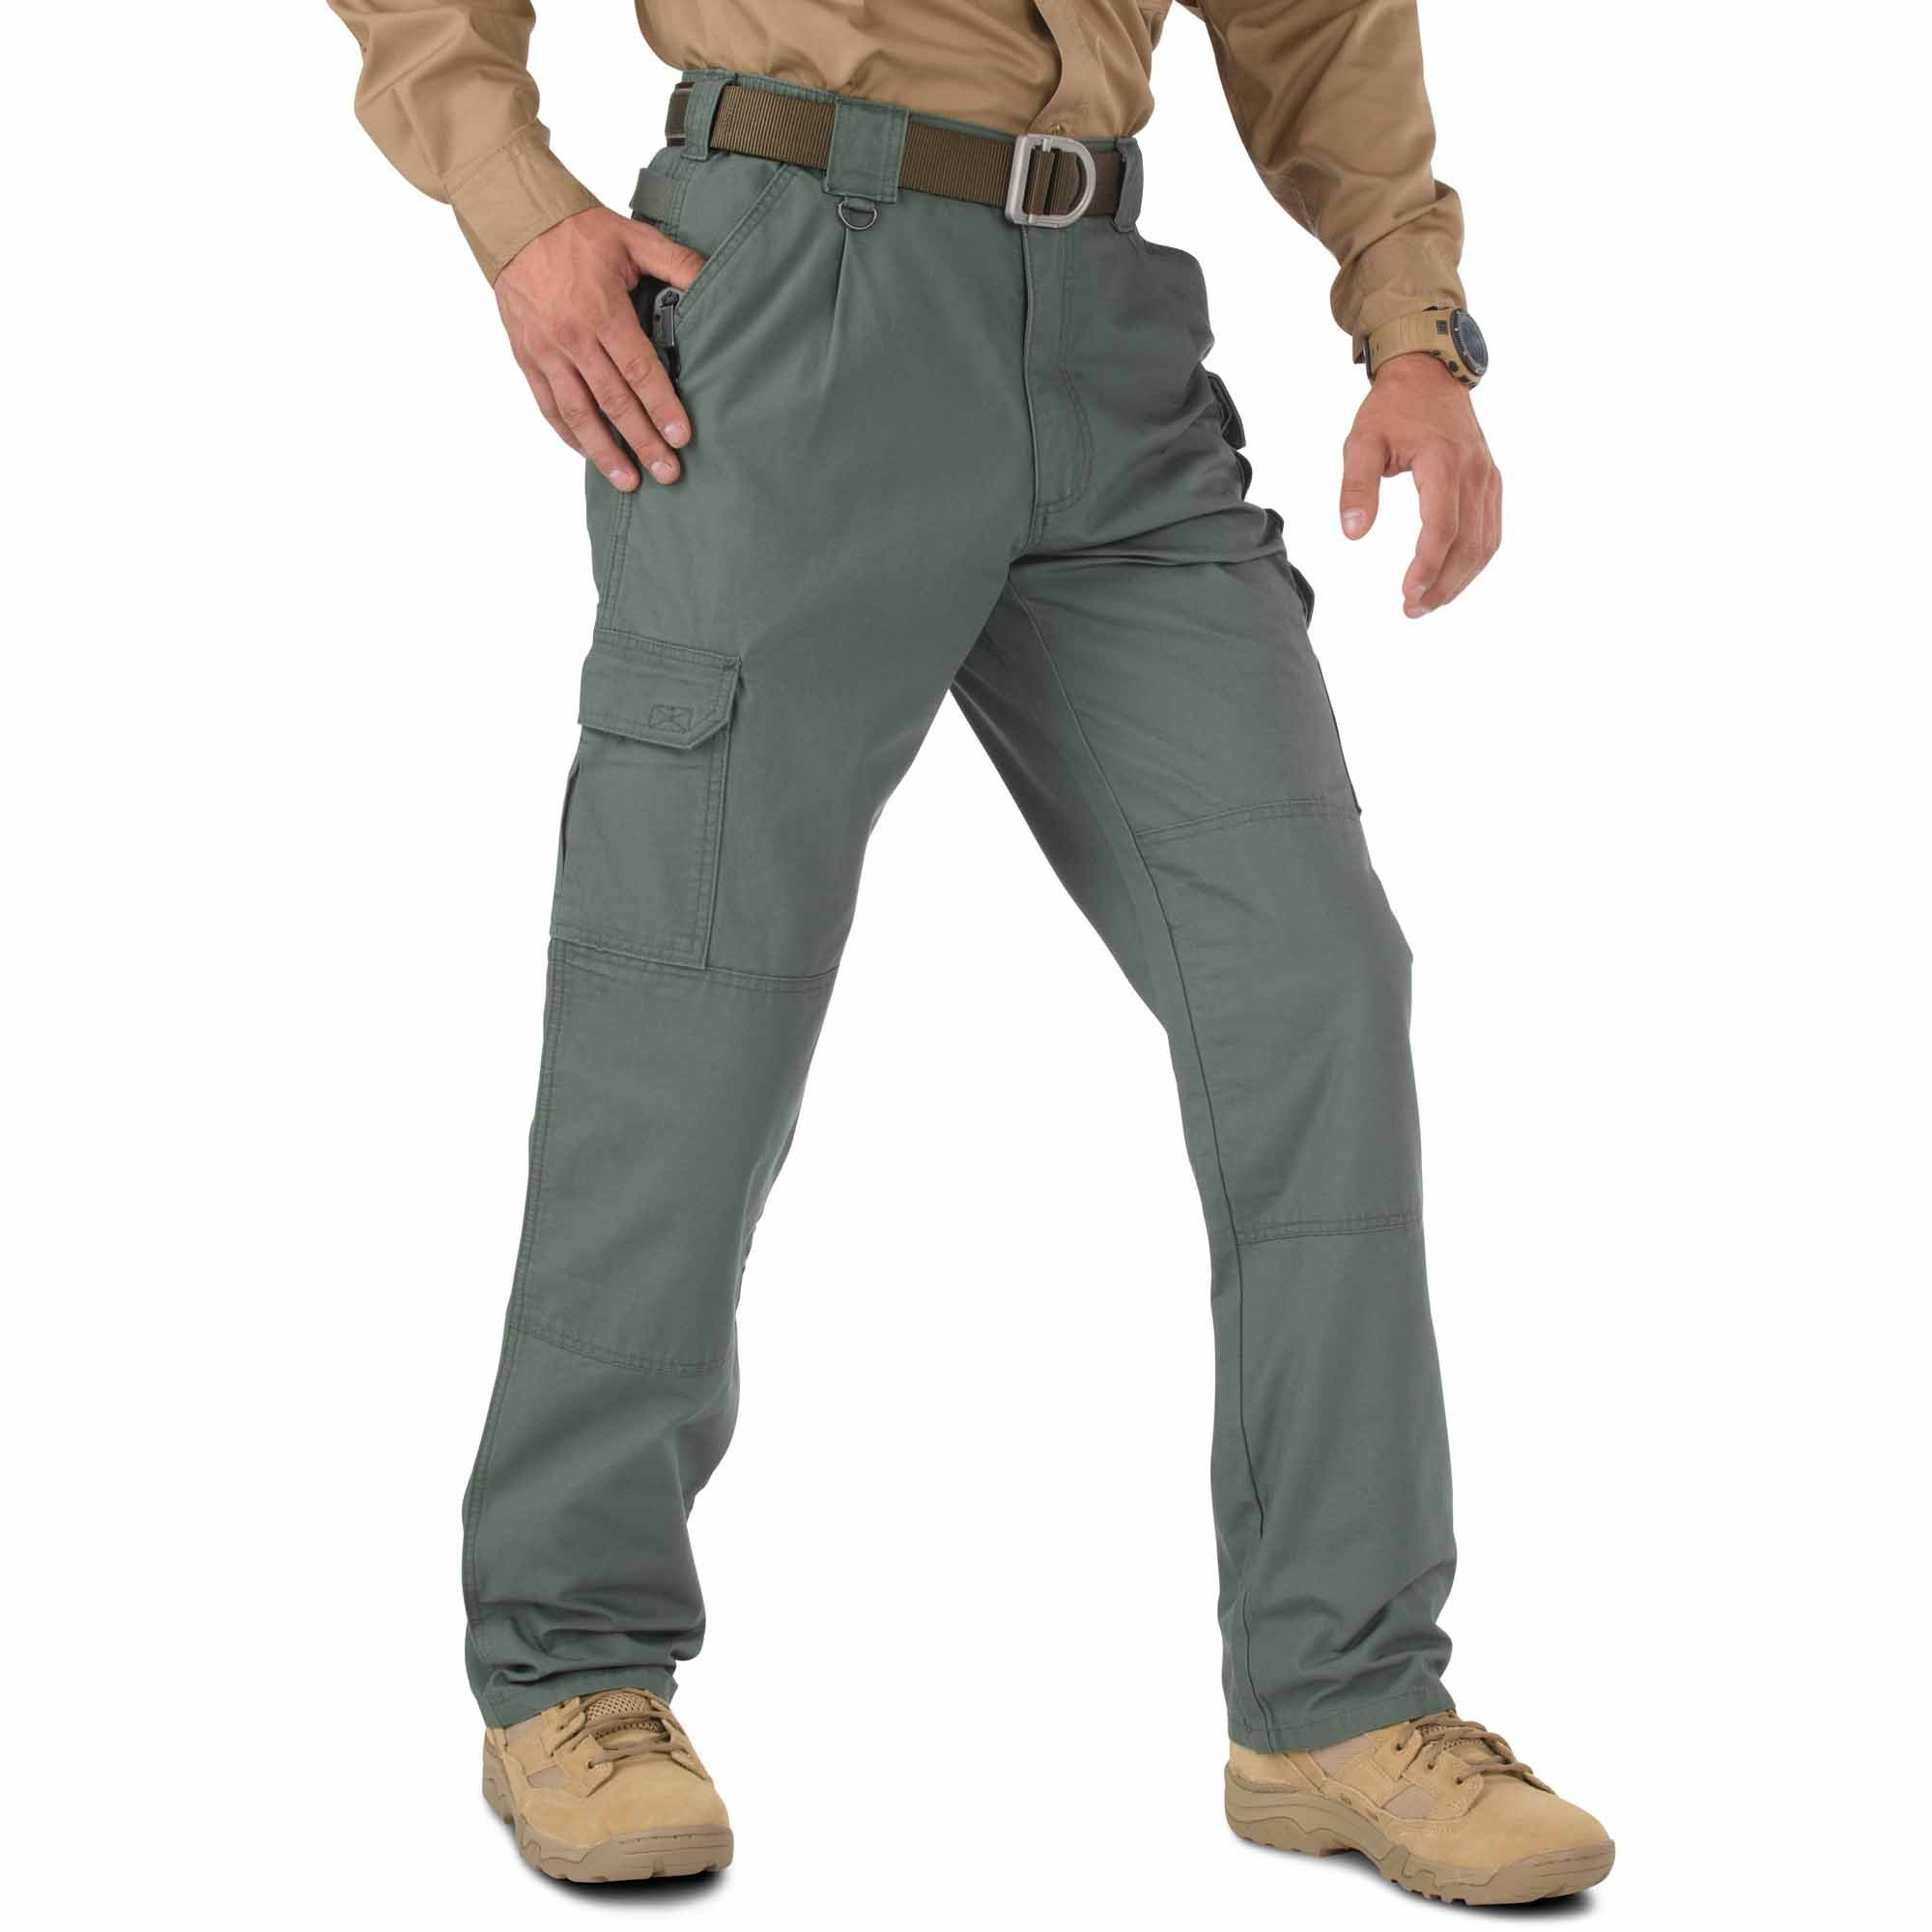 5.11 Tactical Pants,OD Green,36Wx34L by 5.11